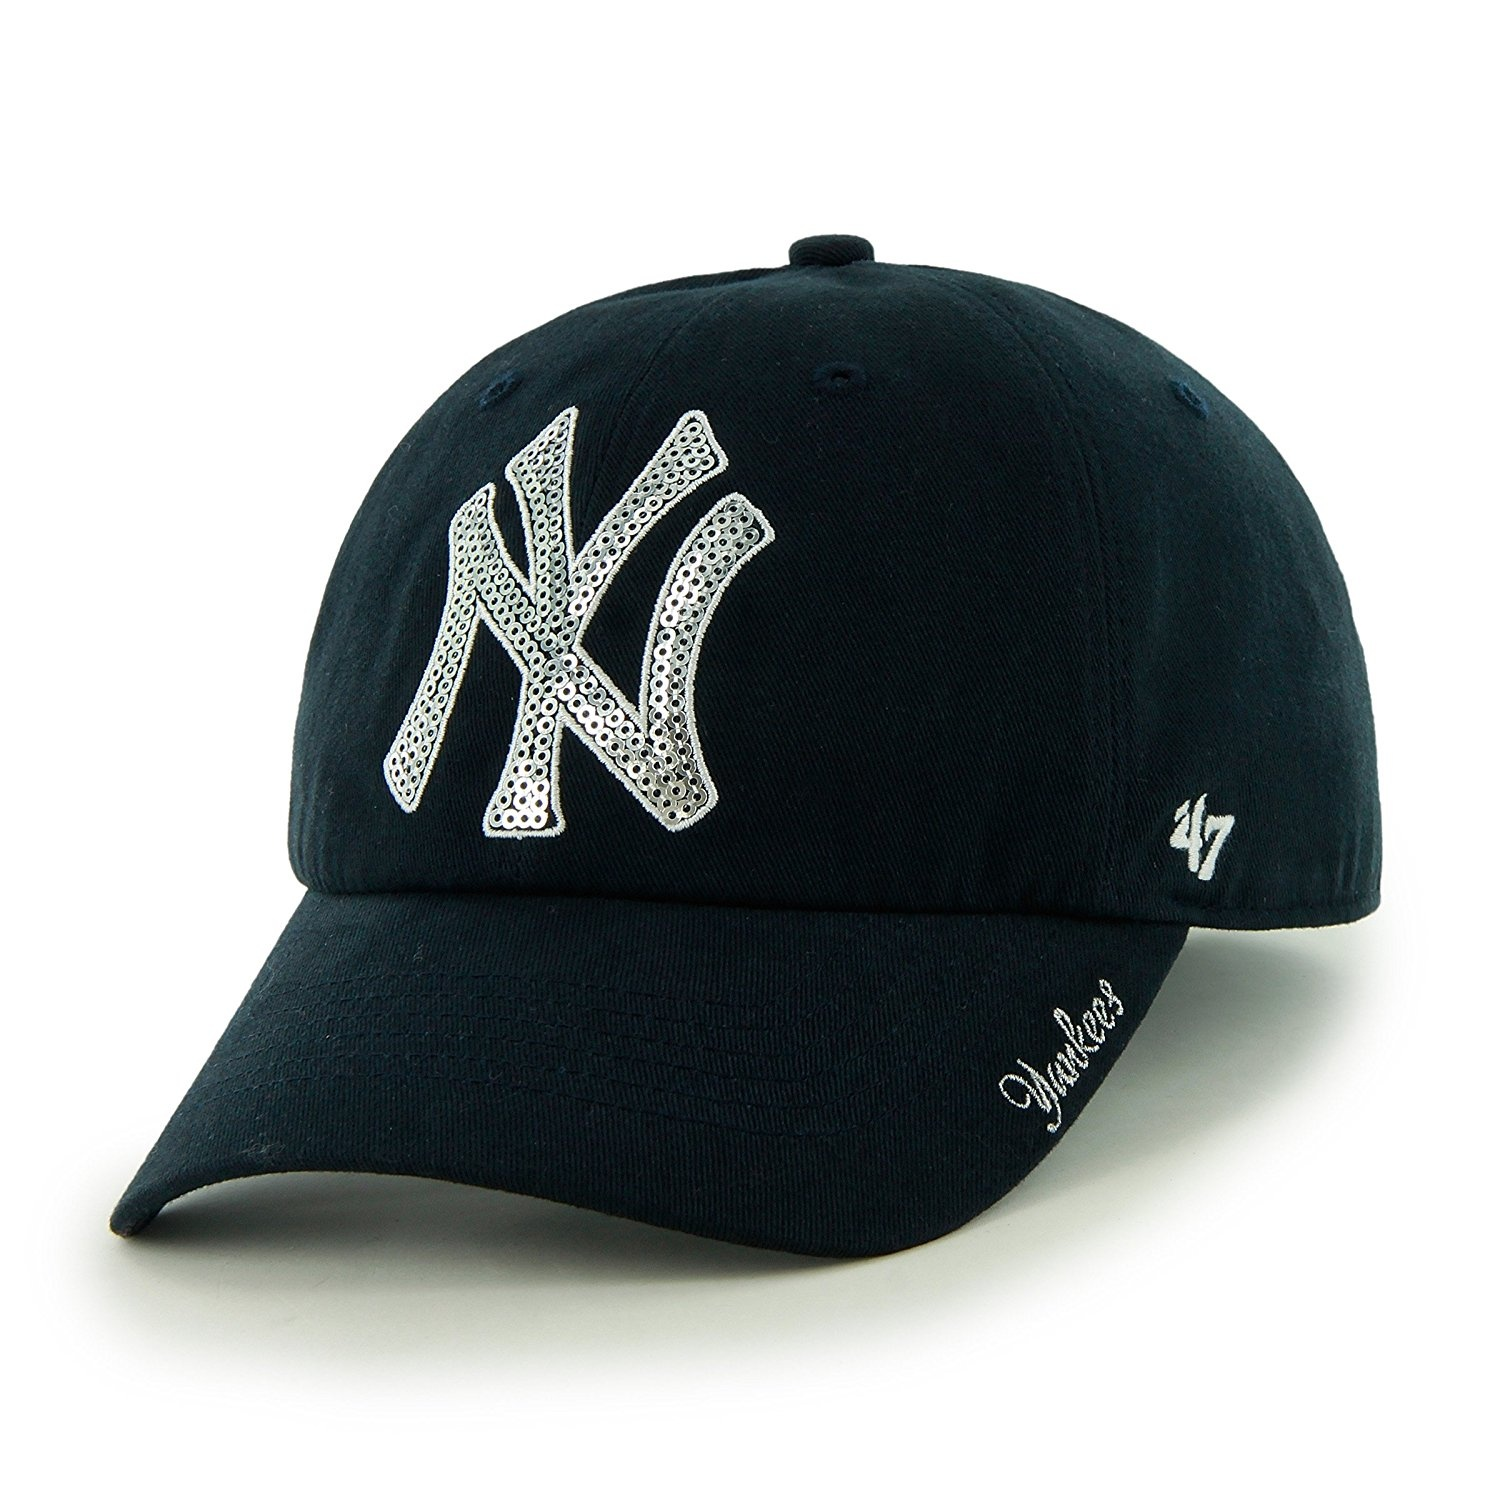 f92f1b3a890ae New York Yankees Cap Sports   Outdoors  Buy Online from Fishpond.co.nz